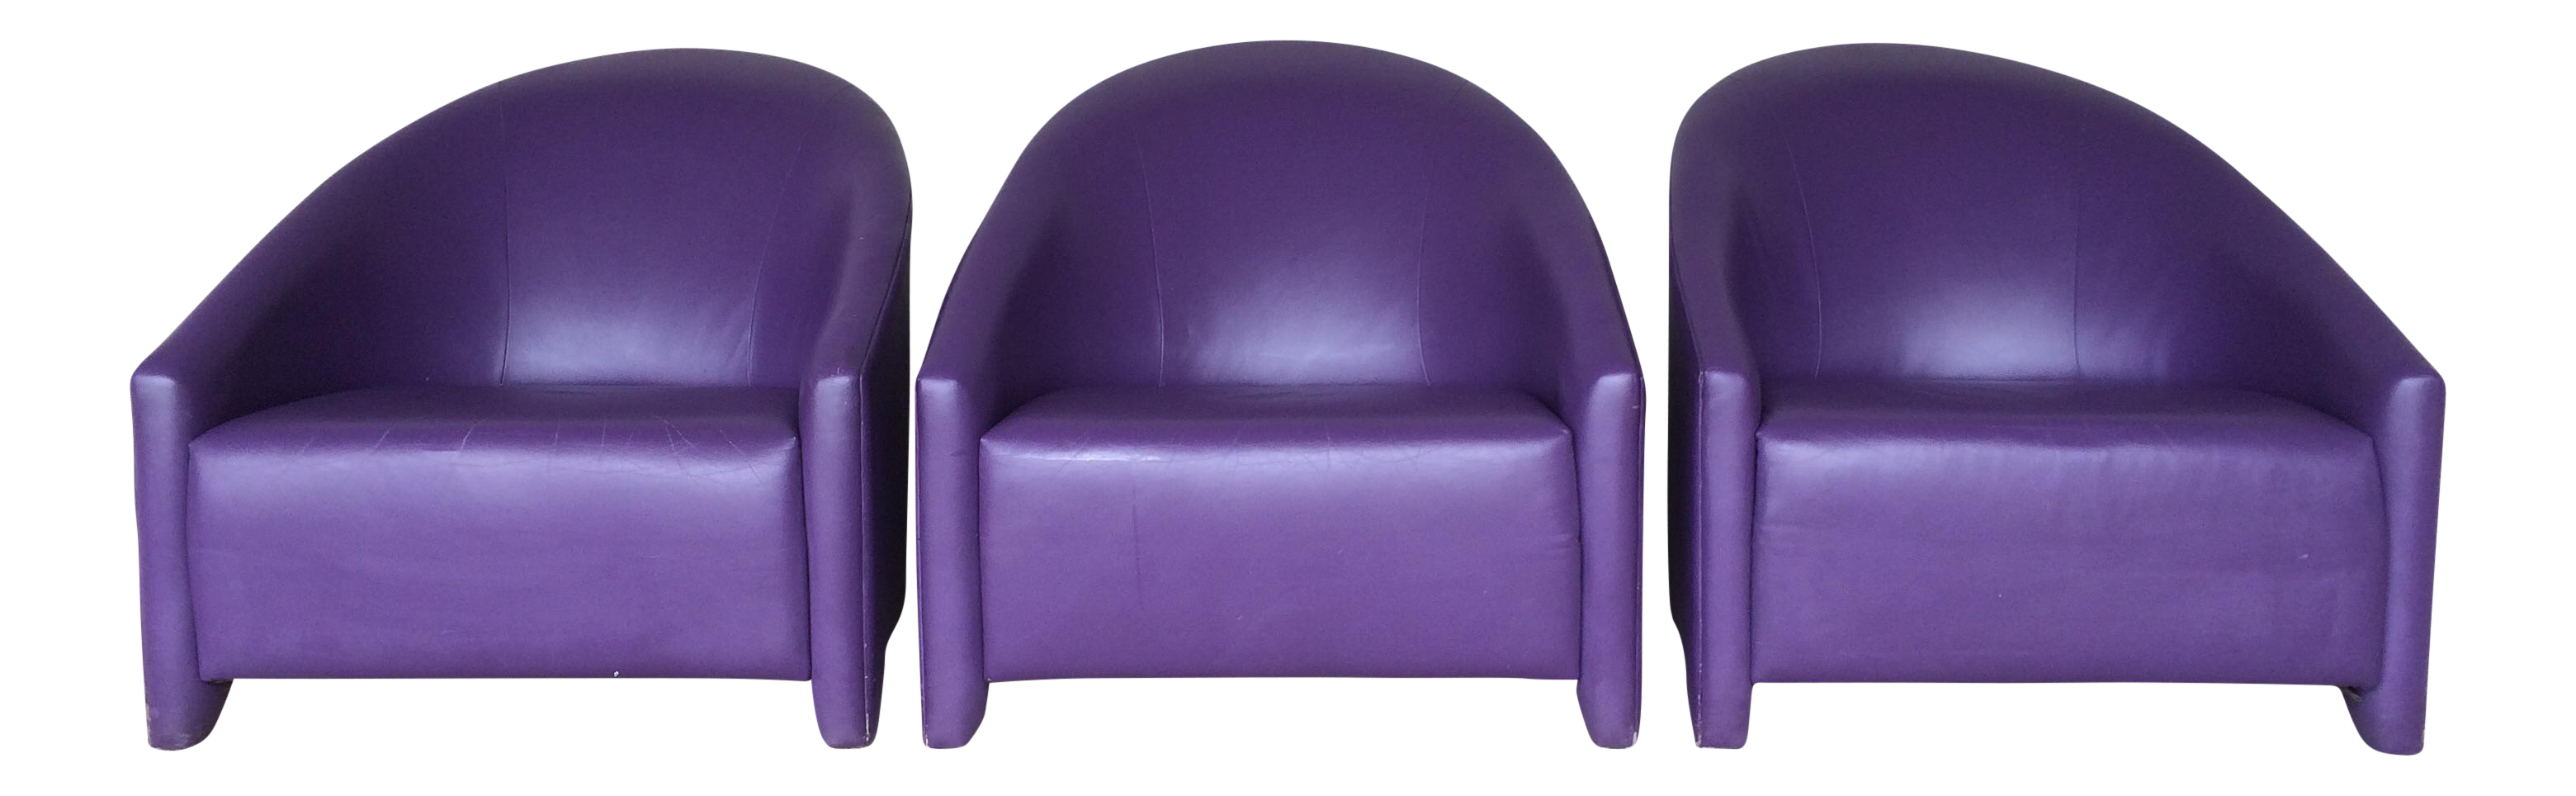 Leather Purple Contemporary Club Chairs Set of 3